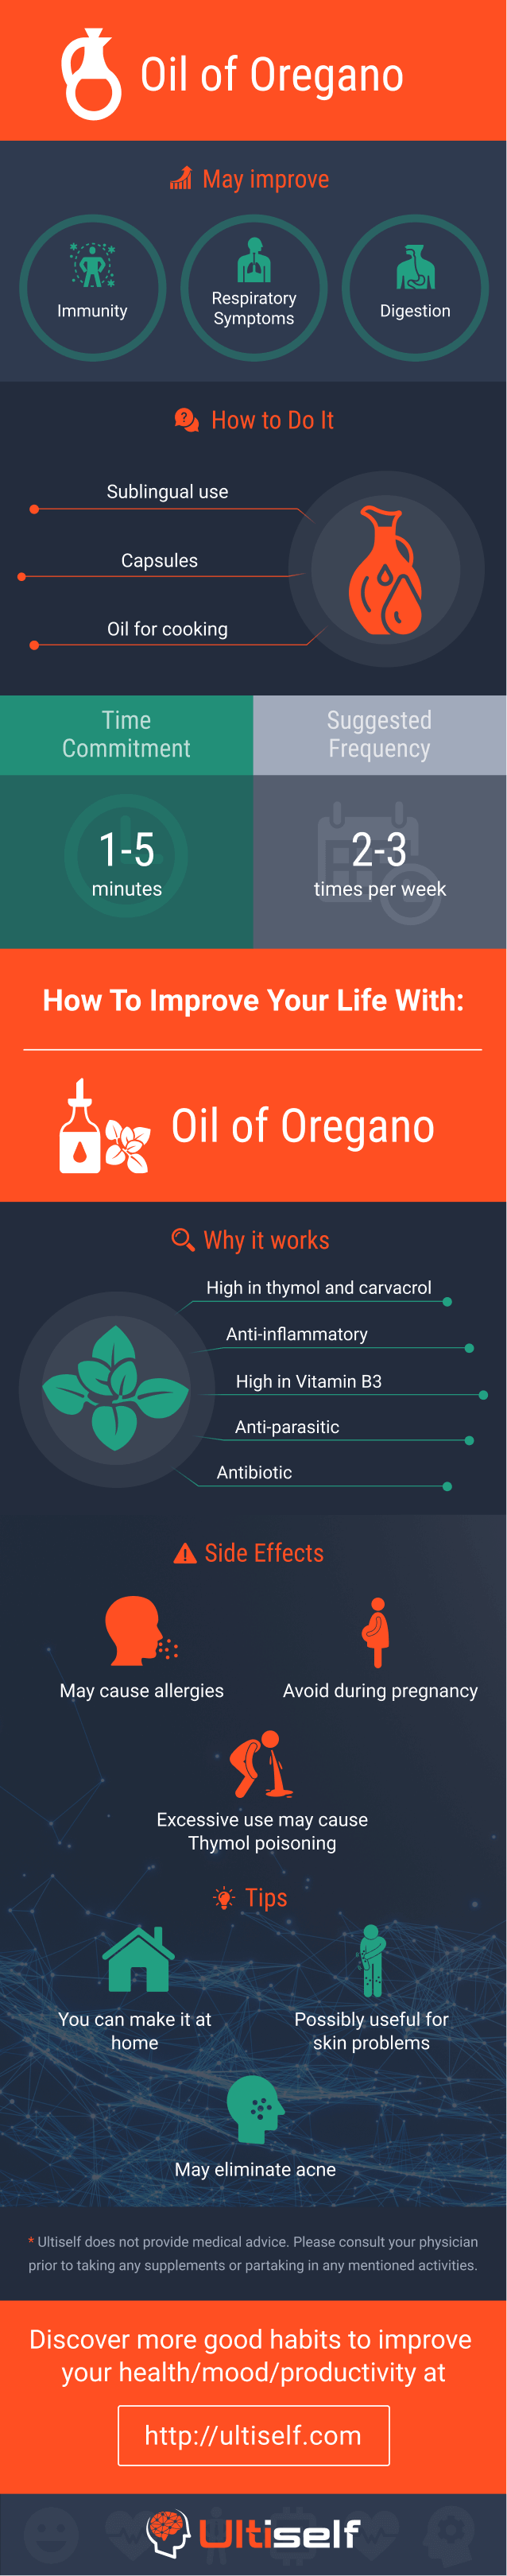 Oil of Oregano infographic